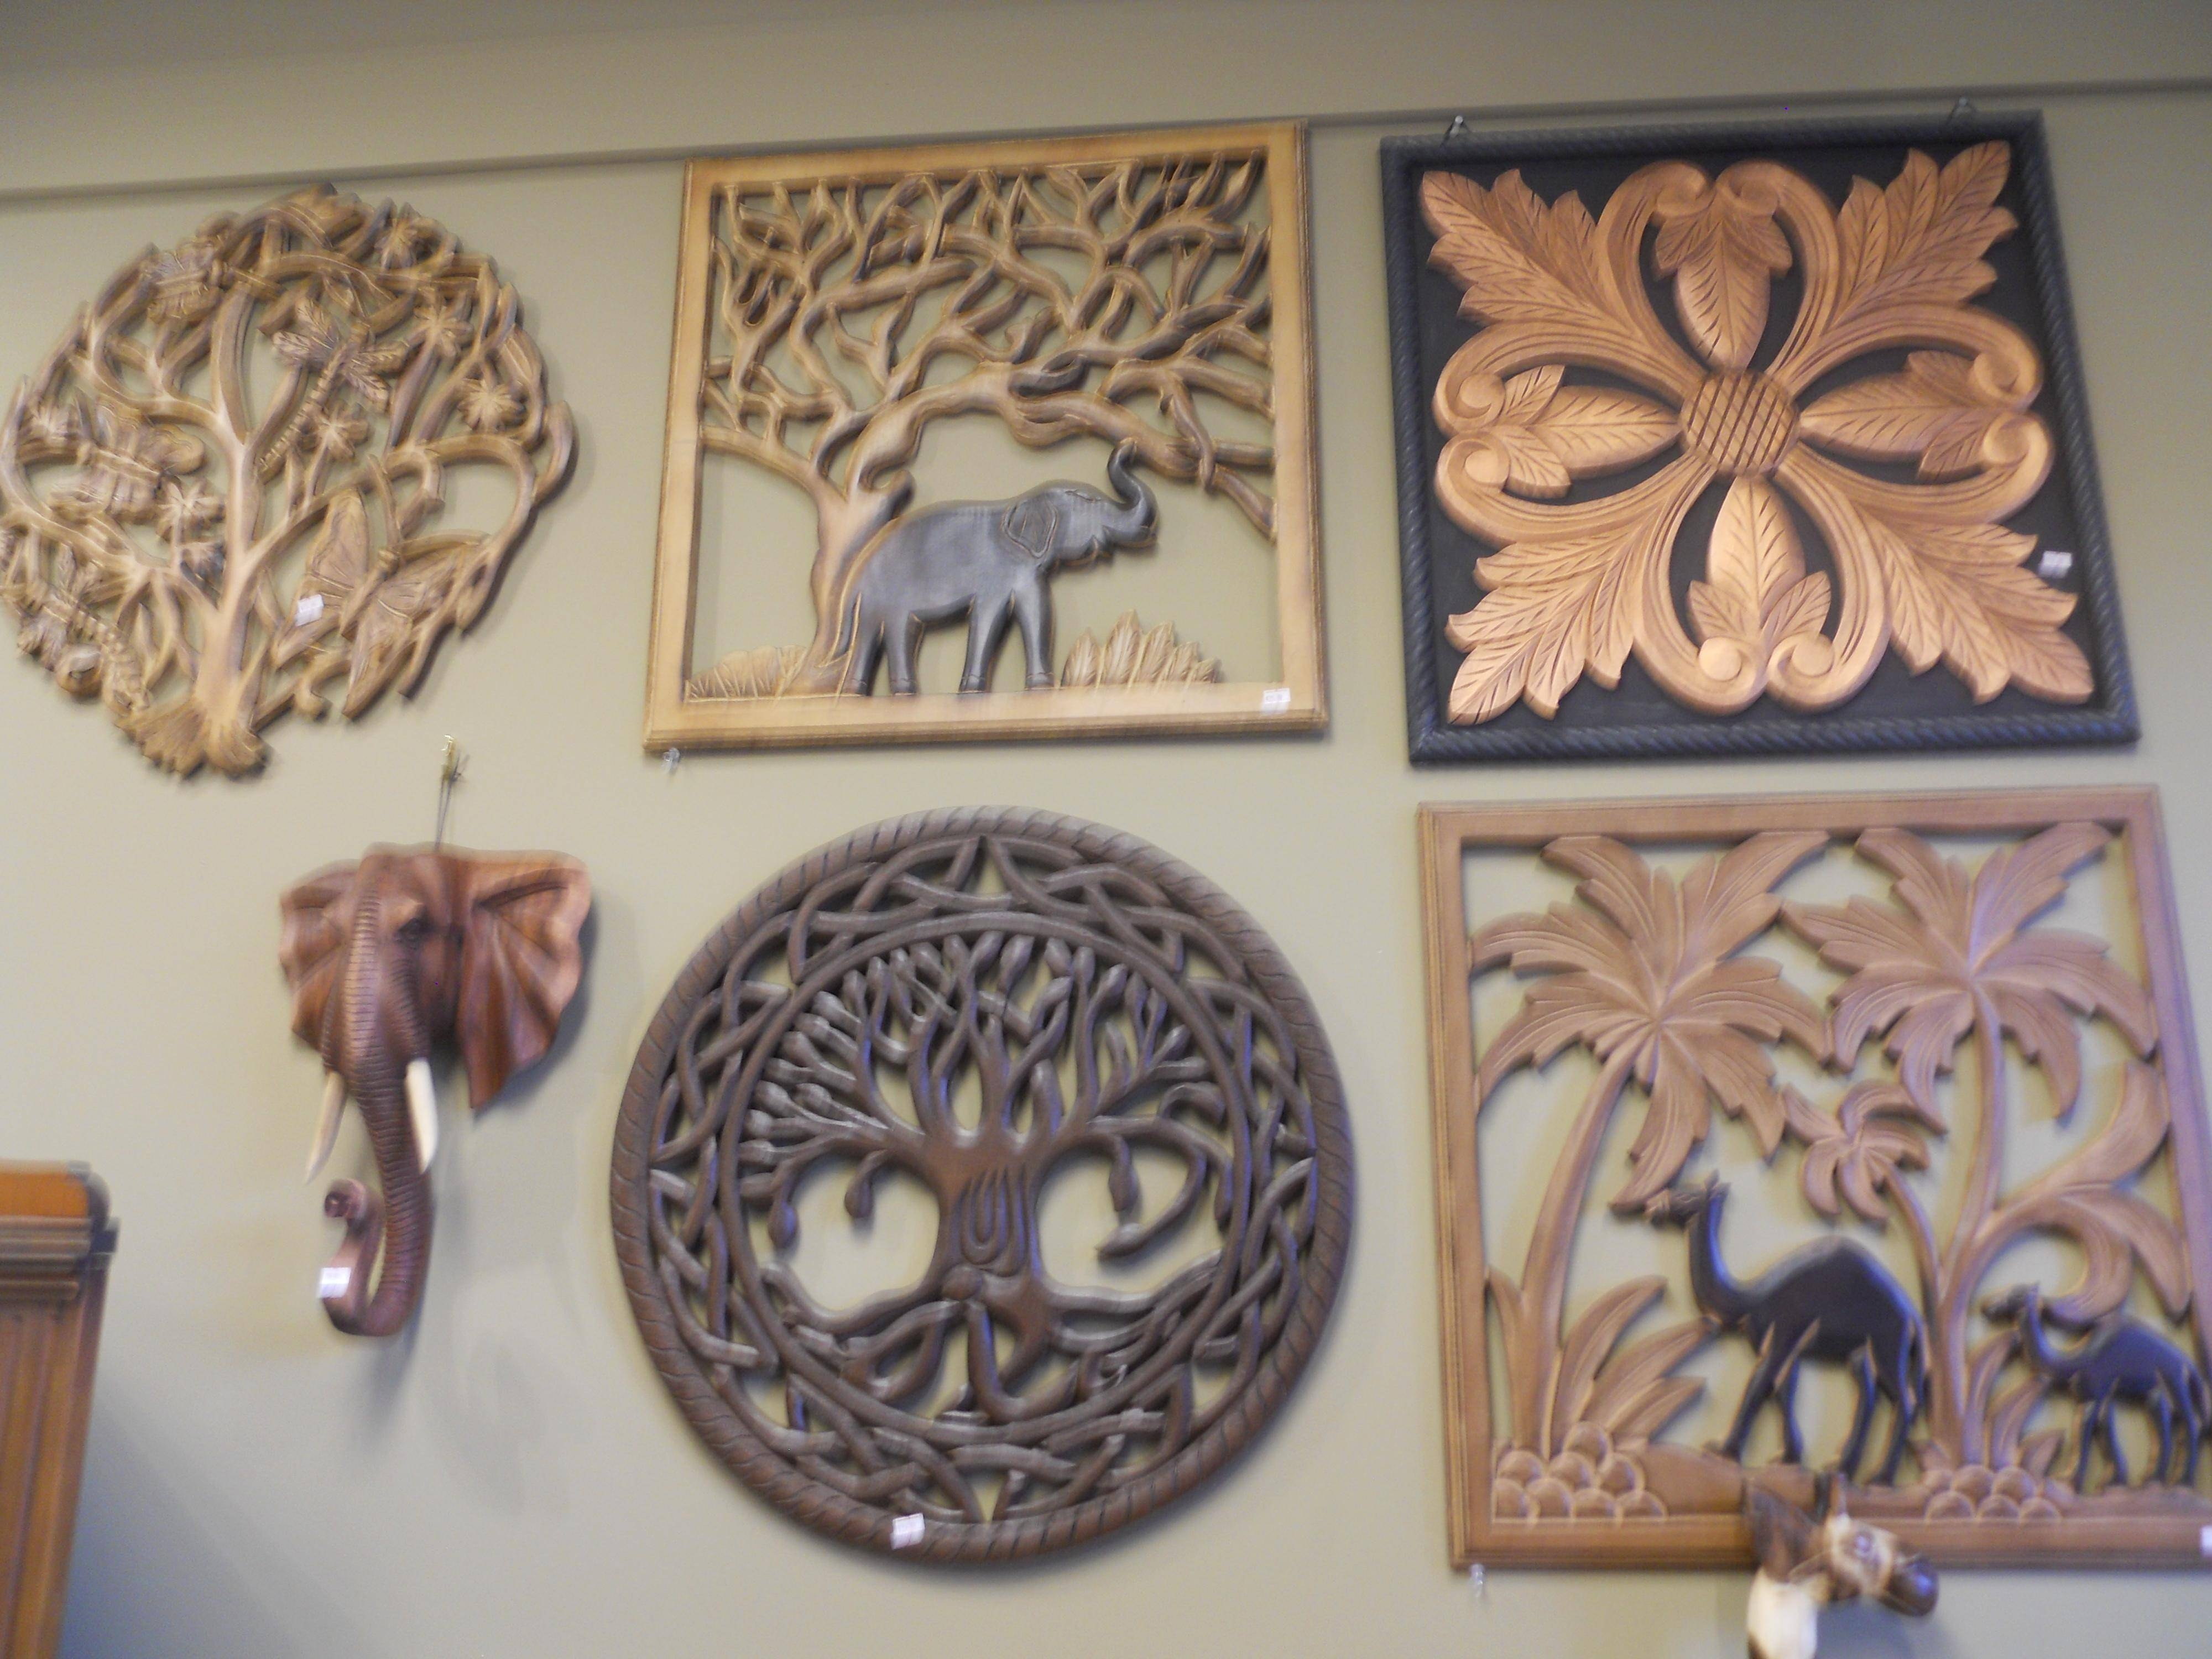 Wood Carved Wall Art | Himalayantrexplorers With Most Recent White Wooden Wall Art (View 20 of 20)